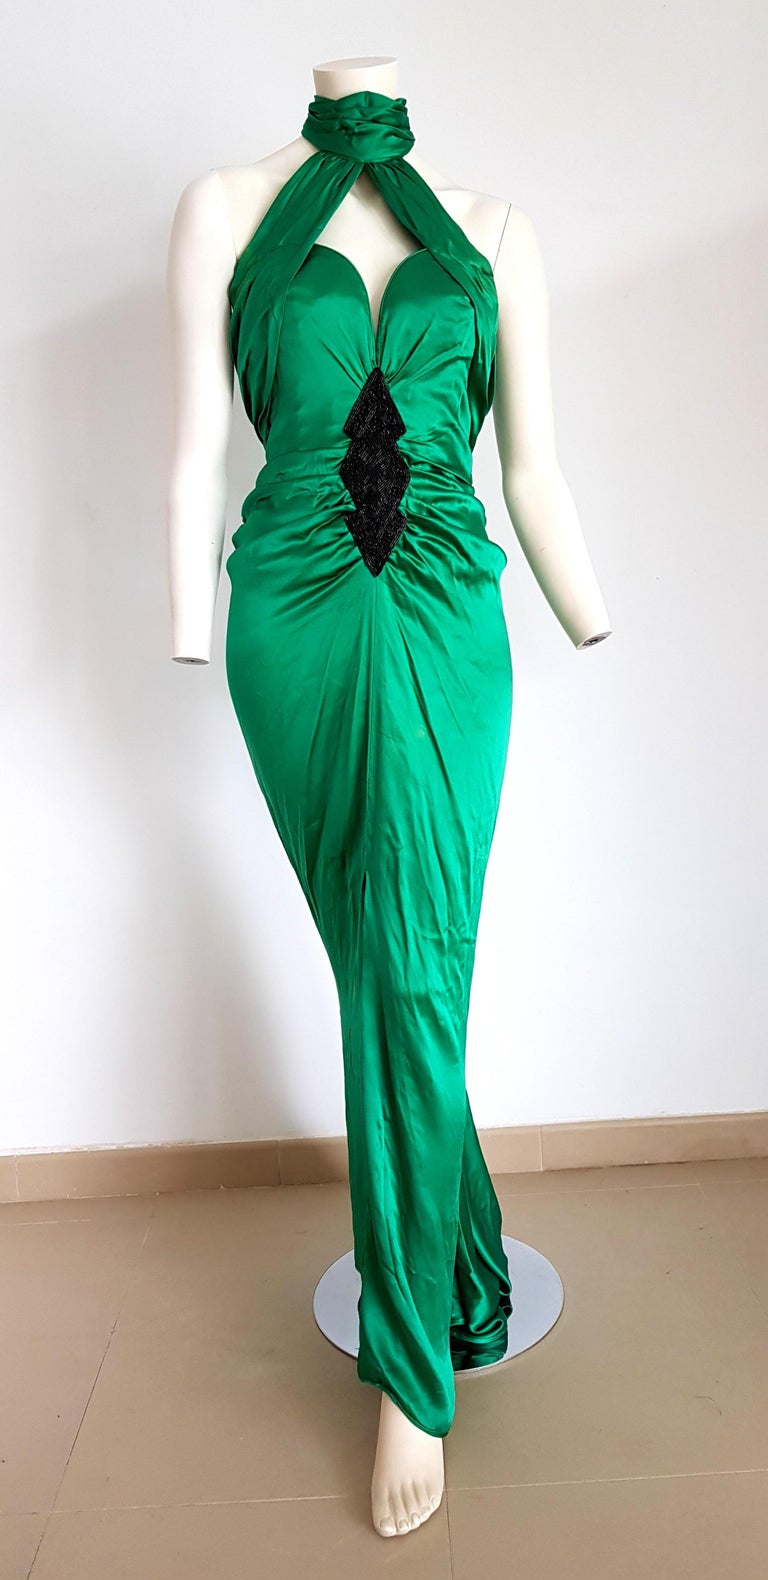 VALENTINO Haute Couture Green, Black Swarovski Beading Design on Waist, Silk Gown Evening Dress - Unworn, New.  SIZE: equivalent to about Small / Medium, please review approx measurements as follows in cm: lenght 152, chest underarm to underarm 50,